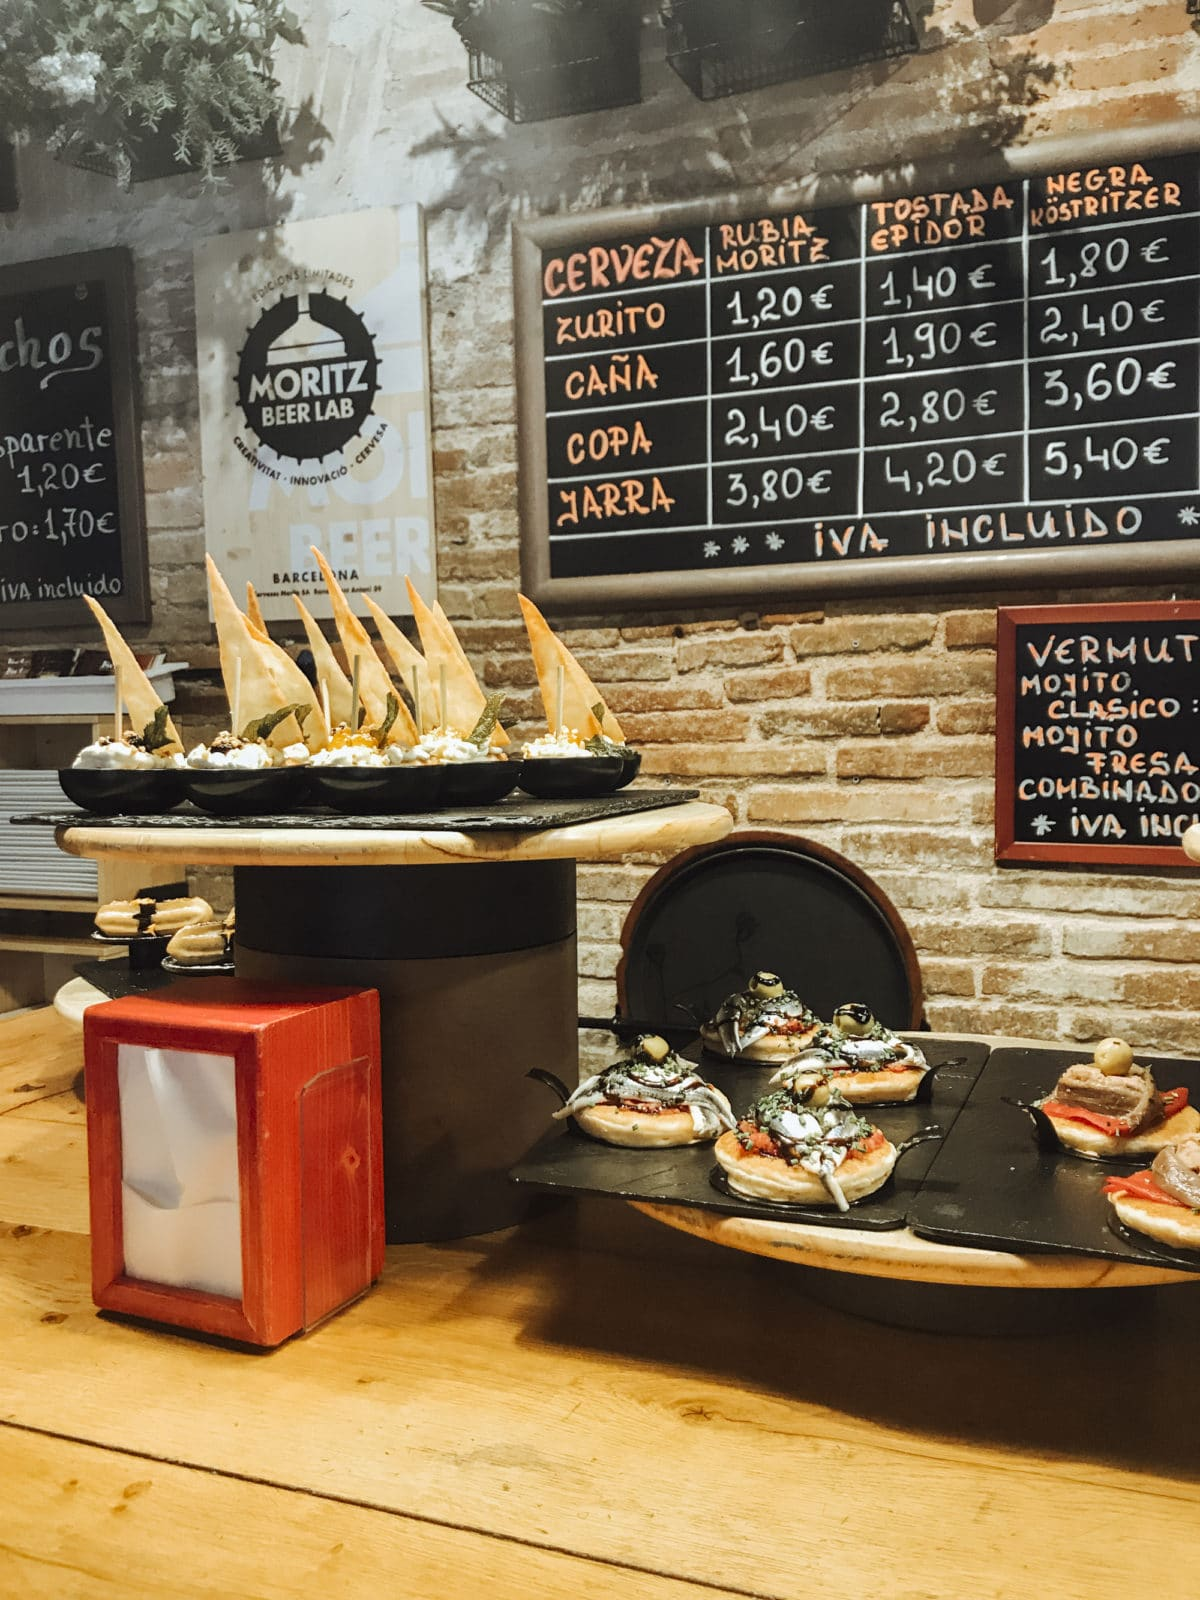 Where to Find the Best Food in Barcelona: Tapas, Pintxos, Churros & More!